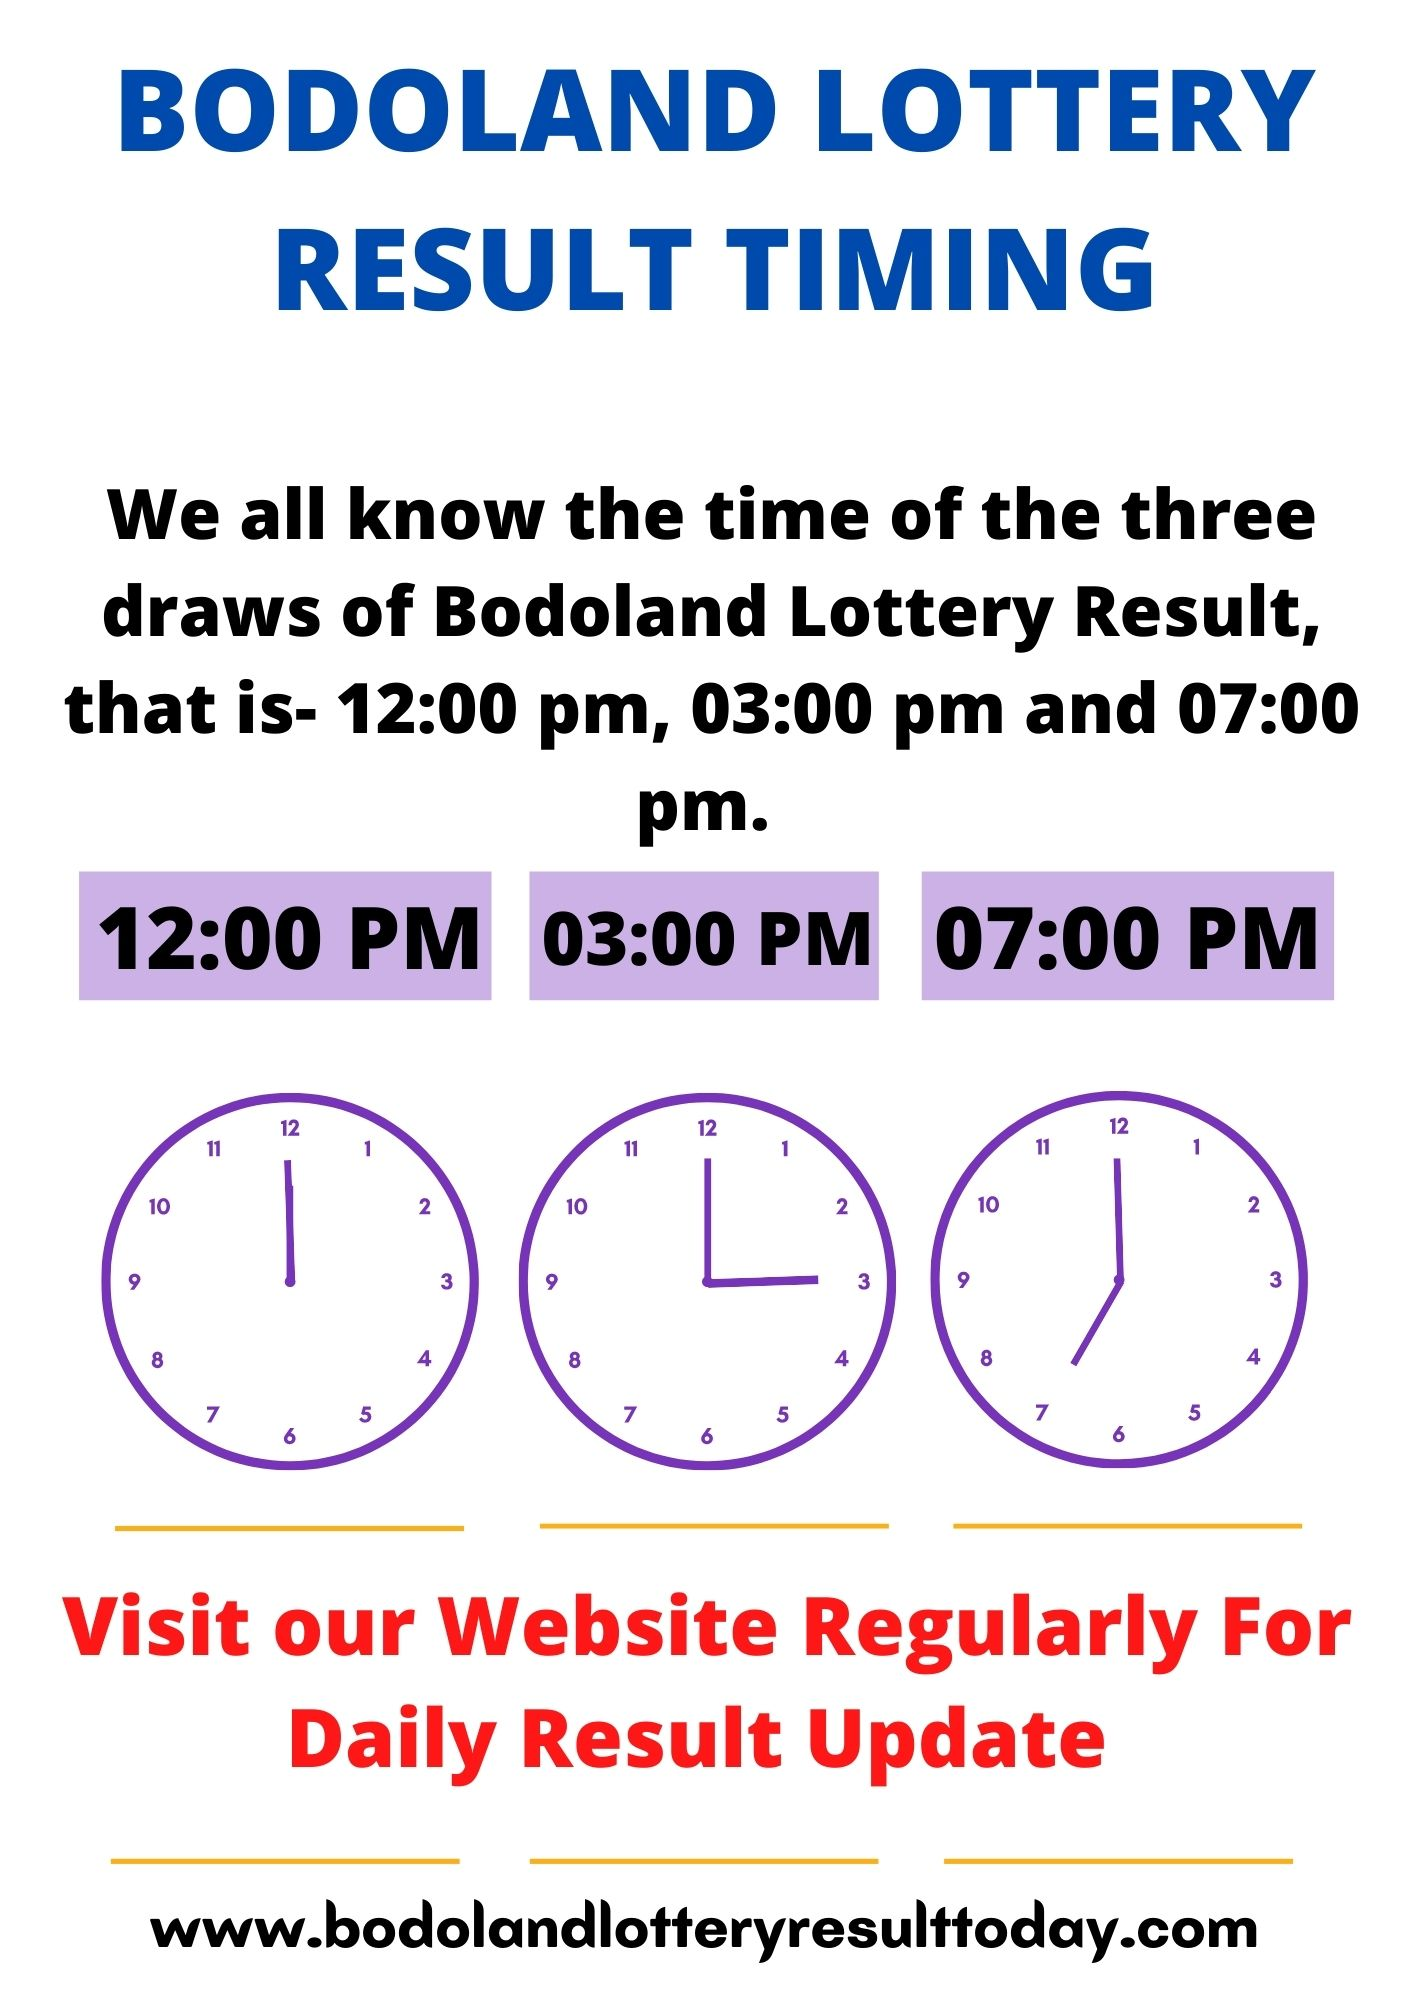 Bodoland Lottery Result Today Timing